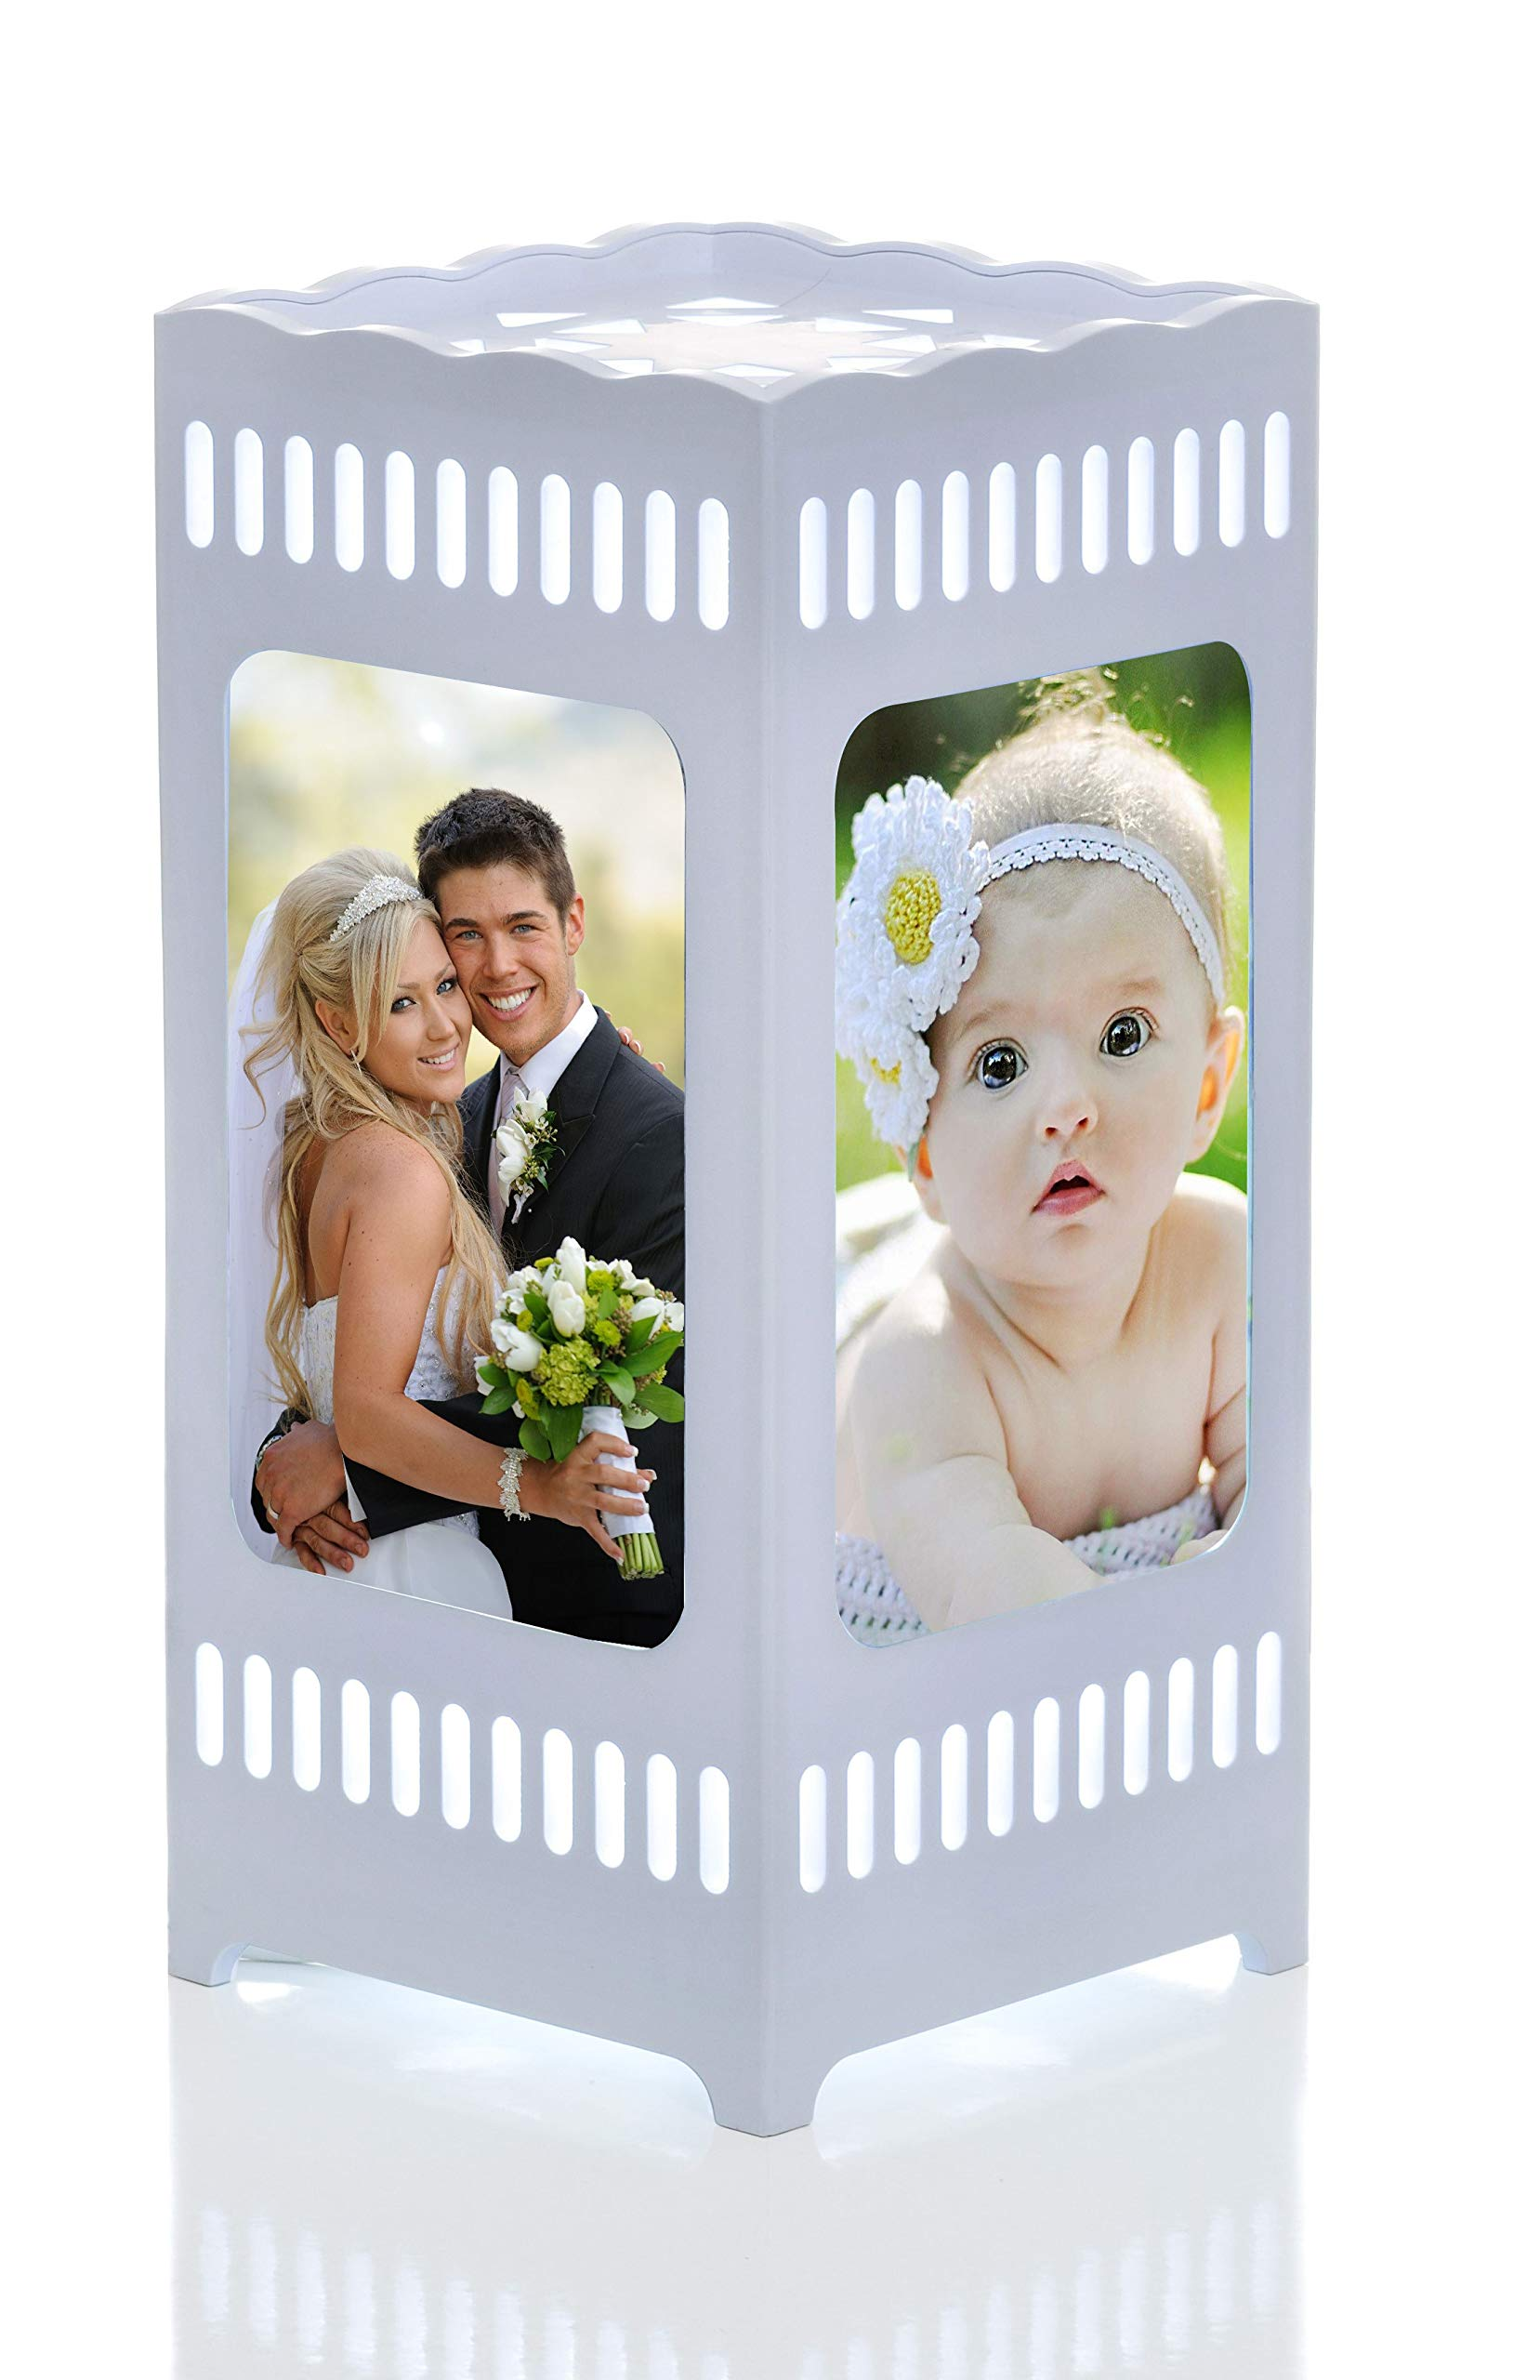 Gift&love Decorative Night Lamp & Picture Frame. Great For Unique Present-Birthday- Wedding-Anniversary-Graduation-Housewarming- Baby Shower Gift-Family Photos-Children's Room-Living Room-Office by Gift&Love